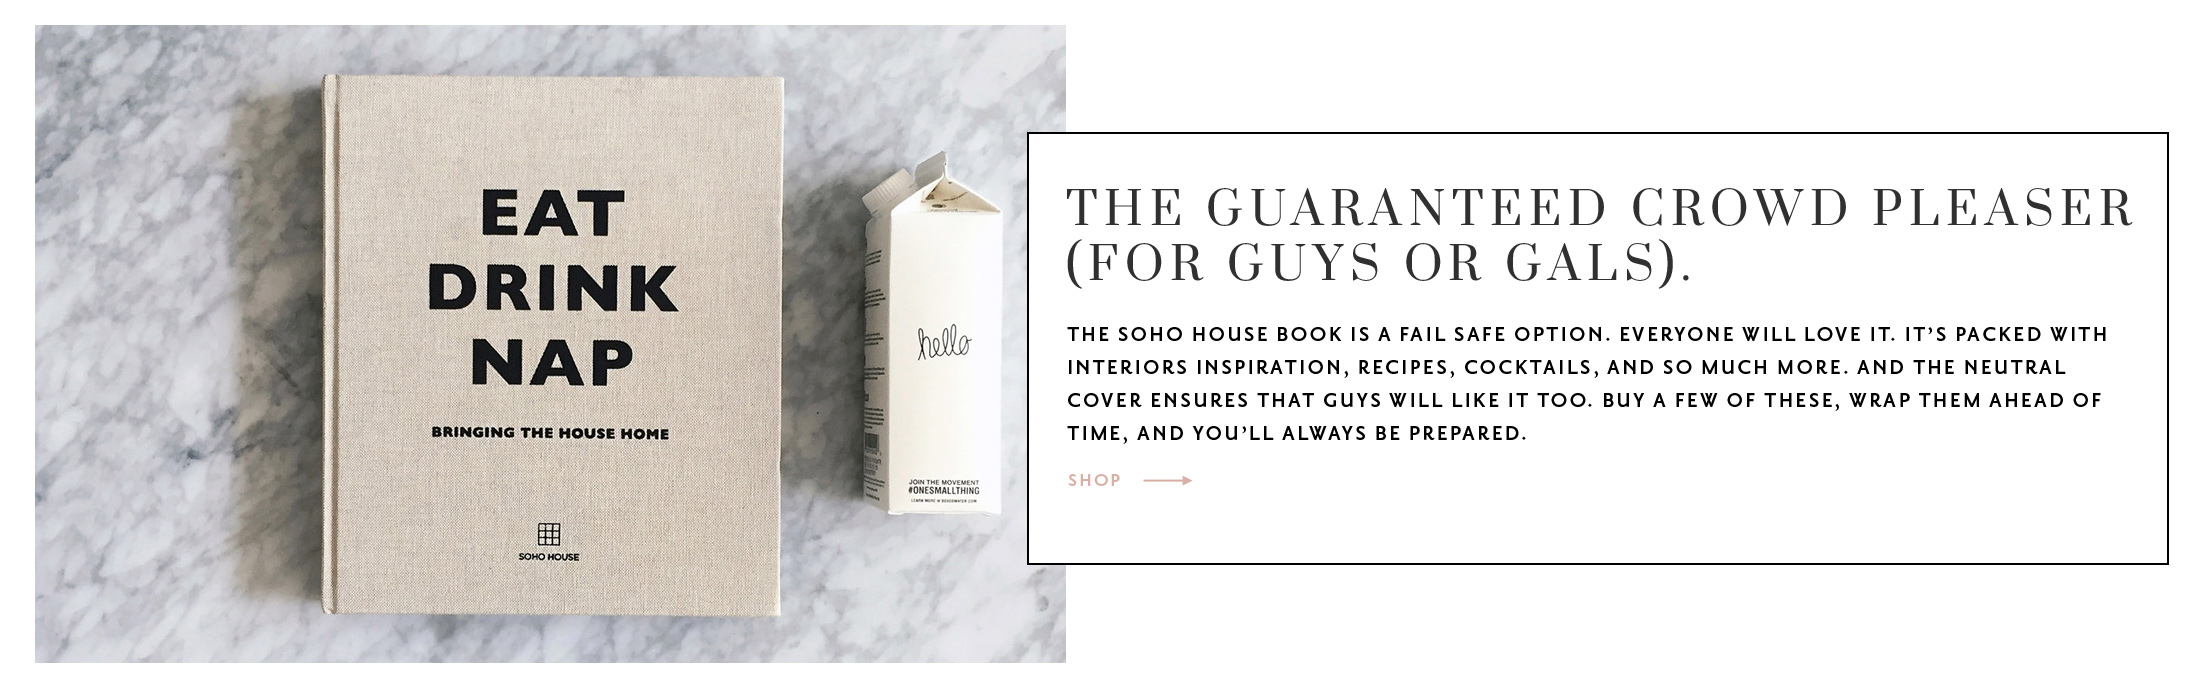 best hostess gifts 2017 | soho house eat drink nap book